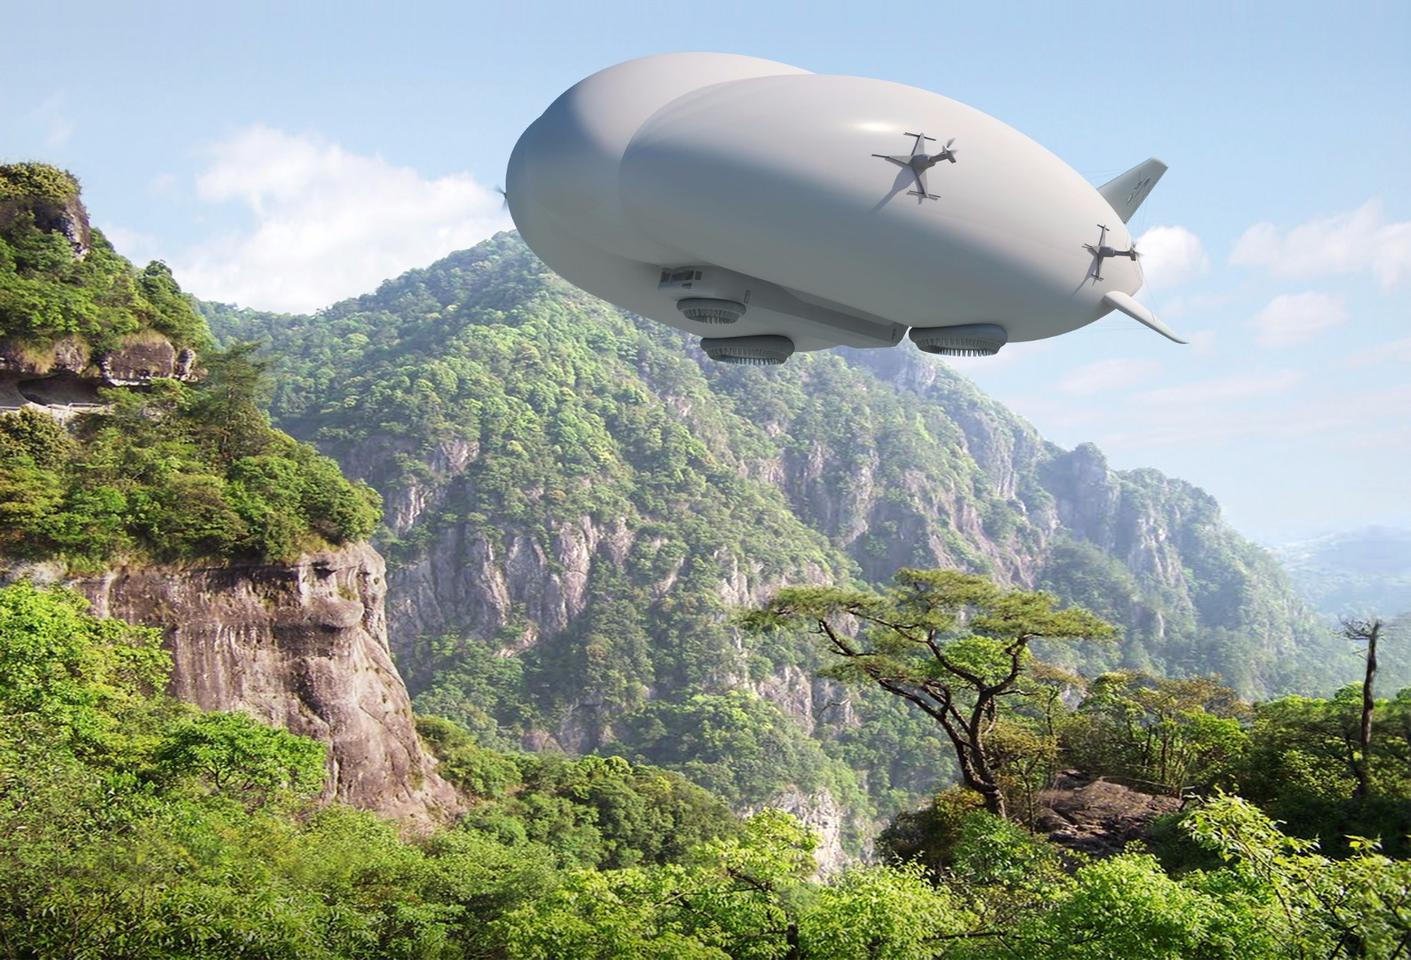 Lockheed Martin's Hybrid Airship is one beast of a heavy hauler